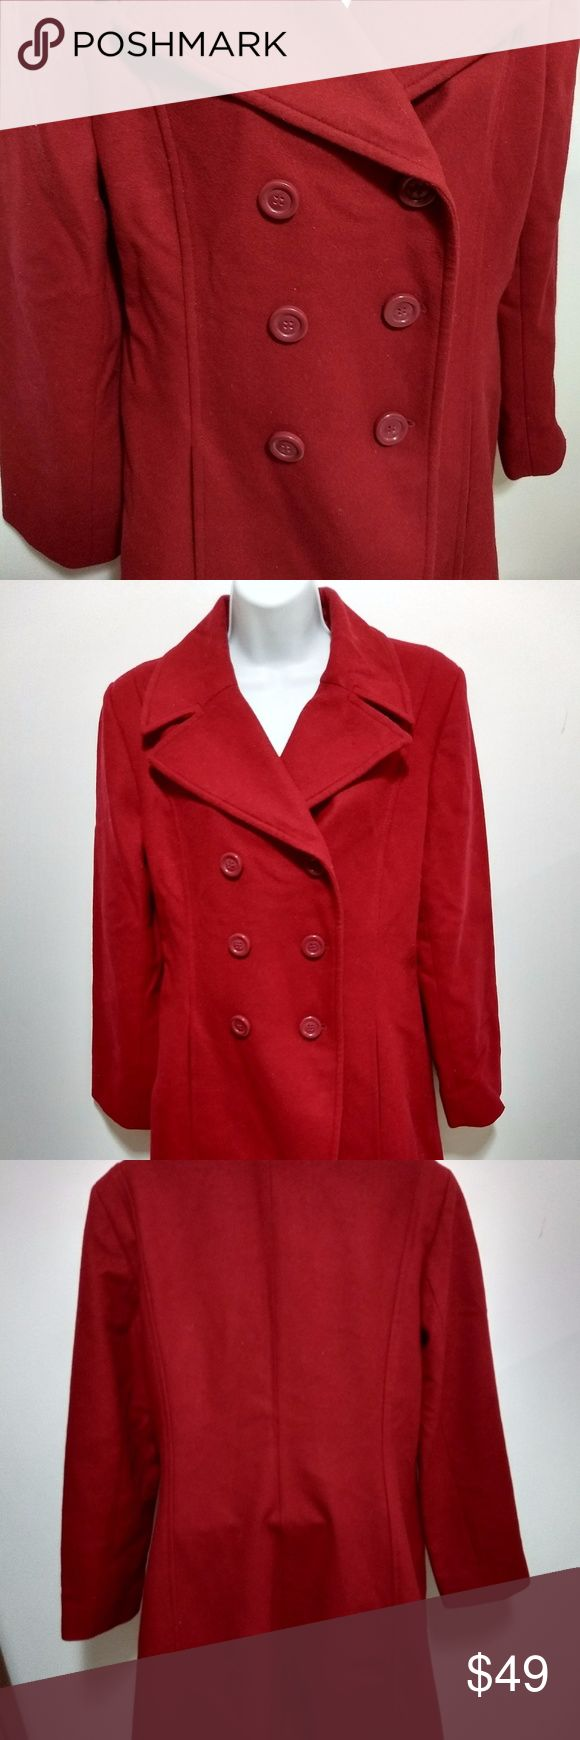 Vintage Harve Benard long red pea coat Harve Benard by Benard Holtzman long red double breasted pea coat. Vintage.   No size tag but I'm guessing it's a medium.   In storage for a long time but in great condition. Harve Benard Jackets & Coats Pea Coats